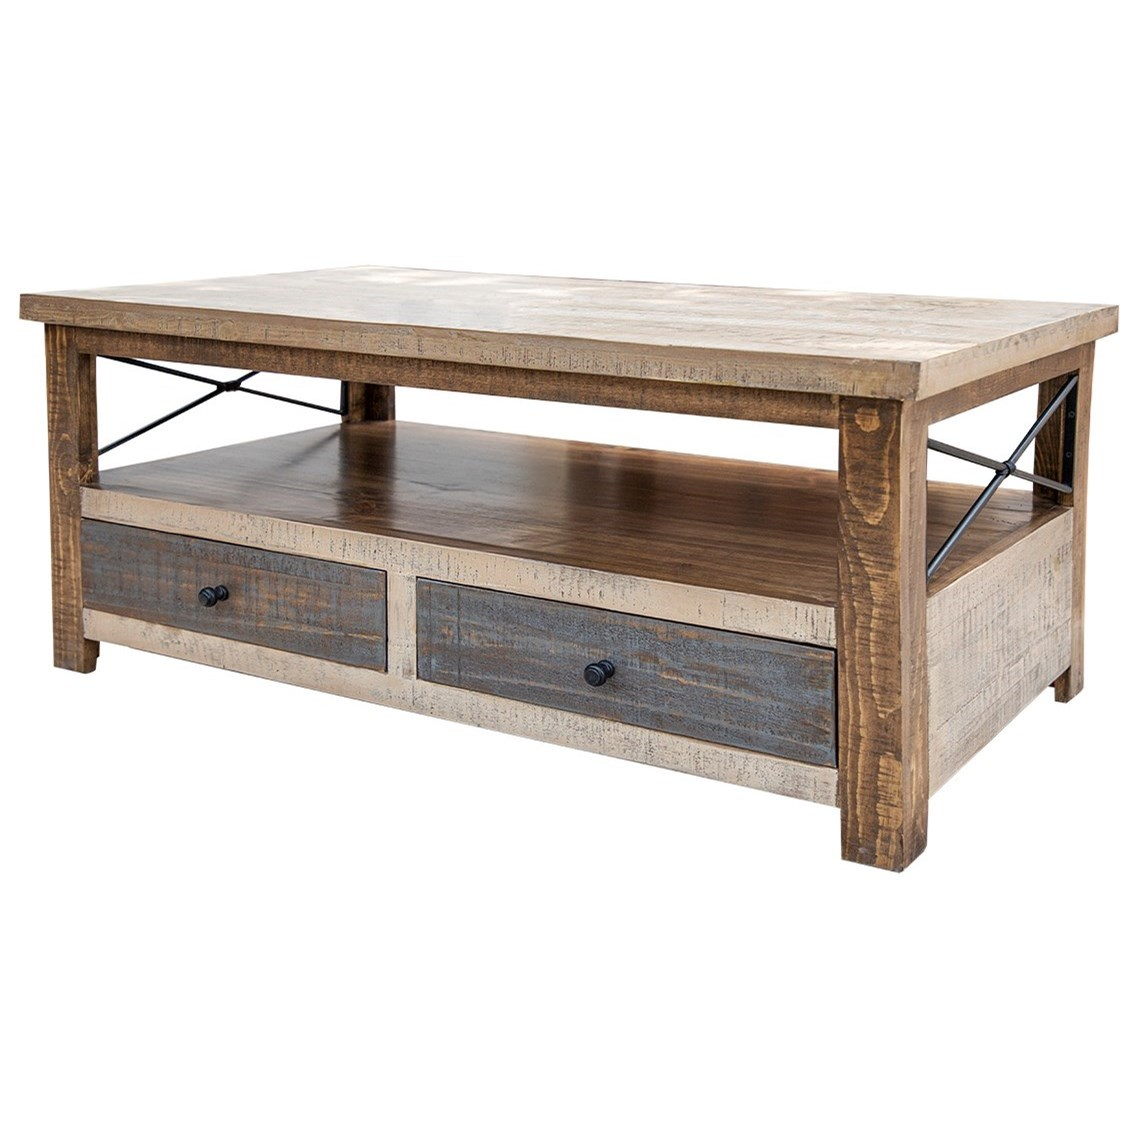 Andaluz Cocktail Table by International Furniture Direct at Catalog Outlet